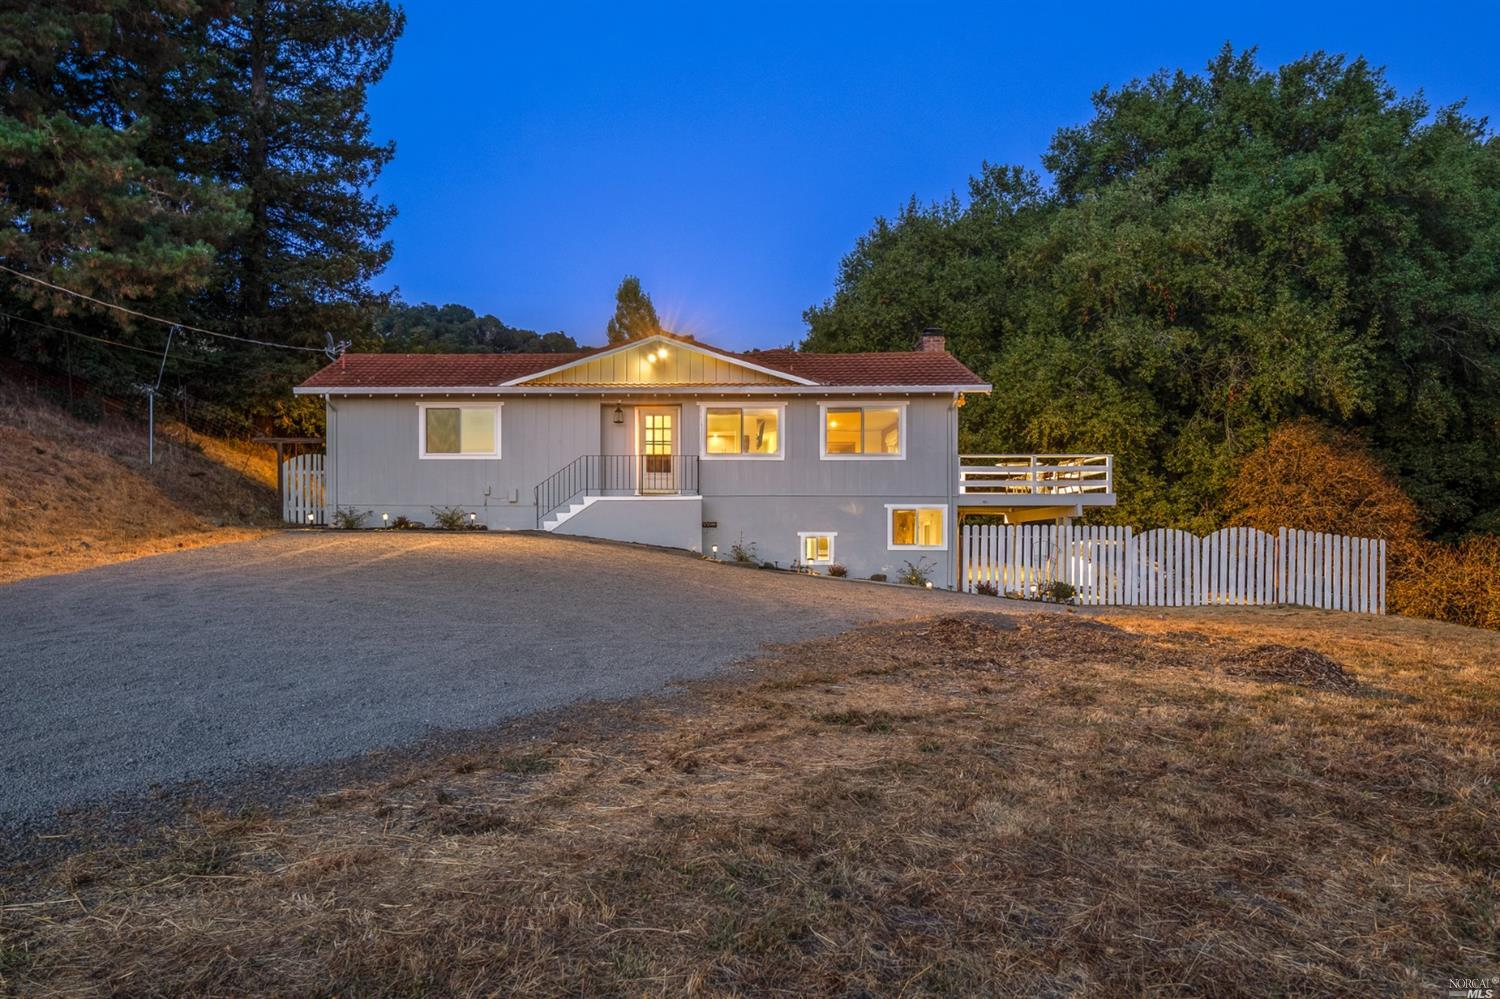 4658 Pepperwood Dr, Penngrove, CA, 94951